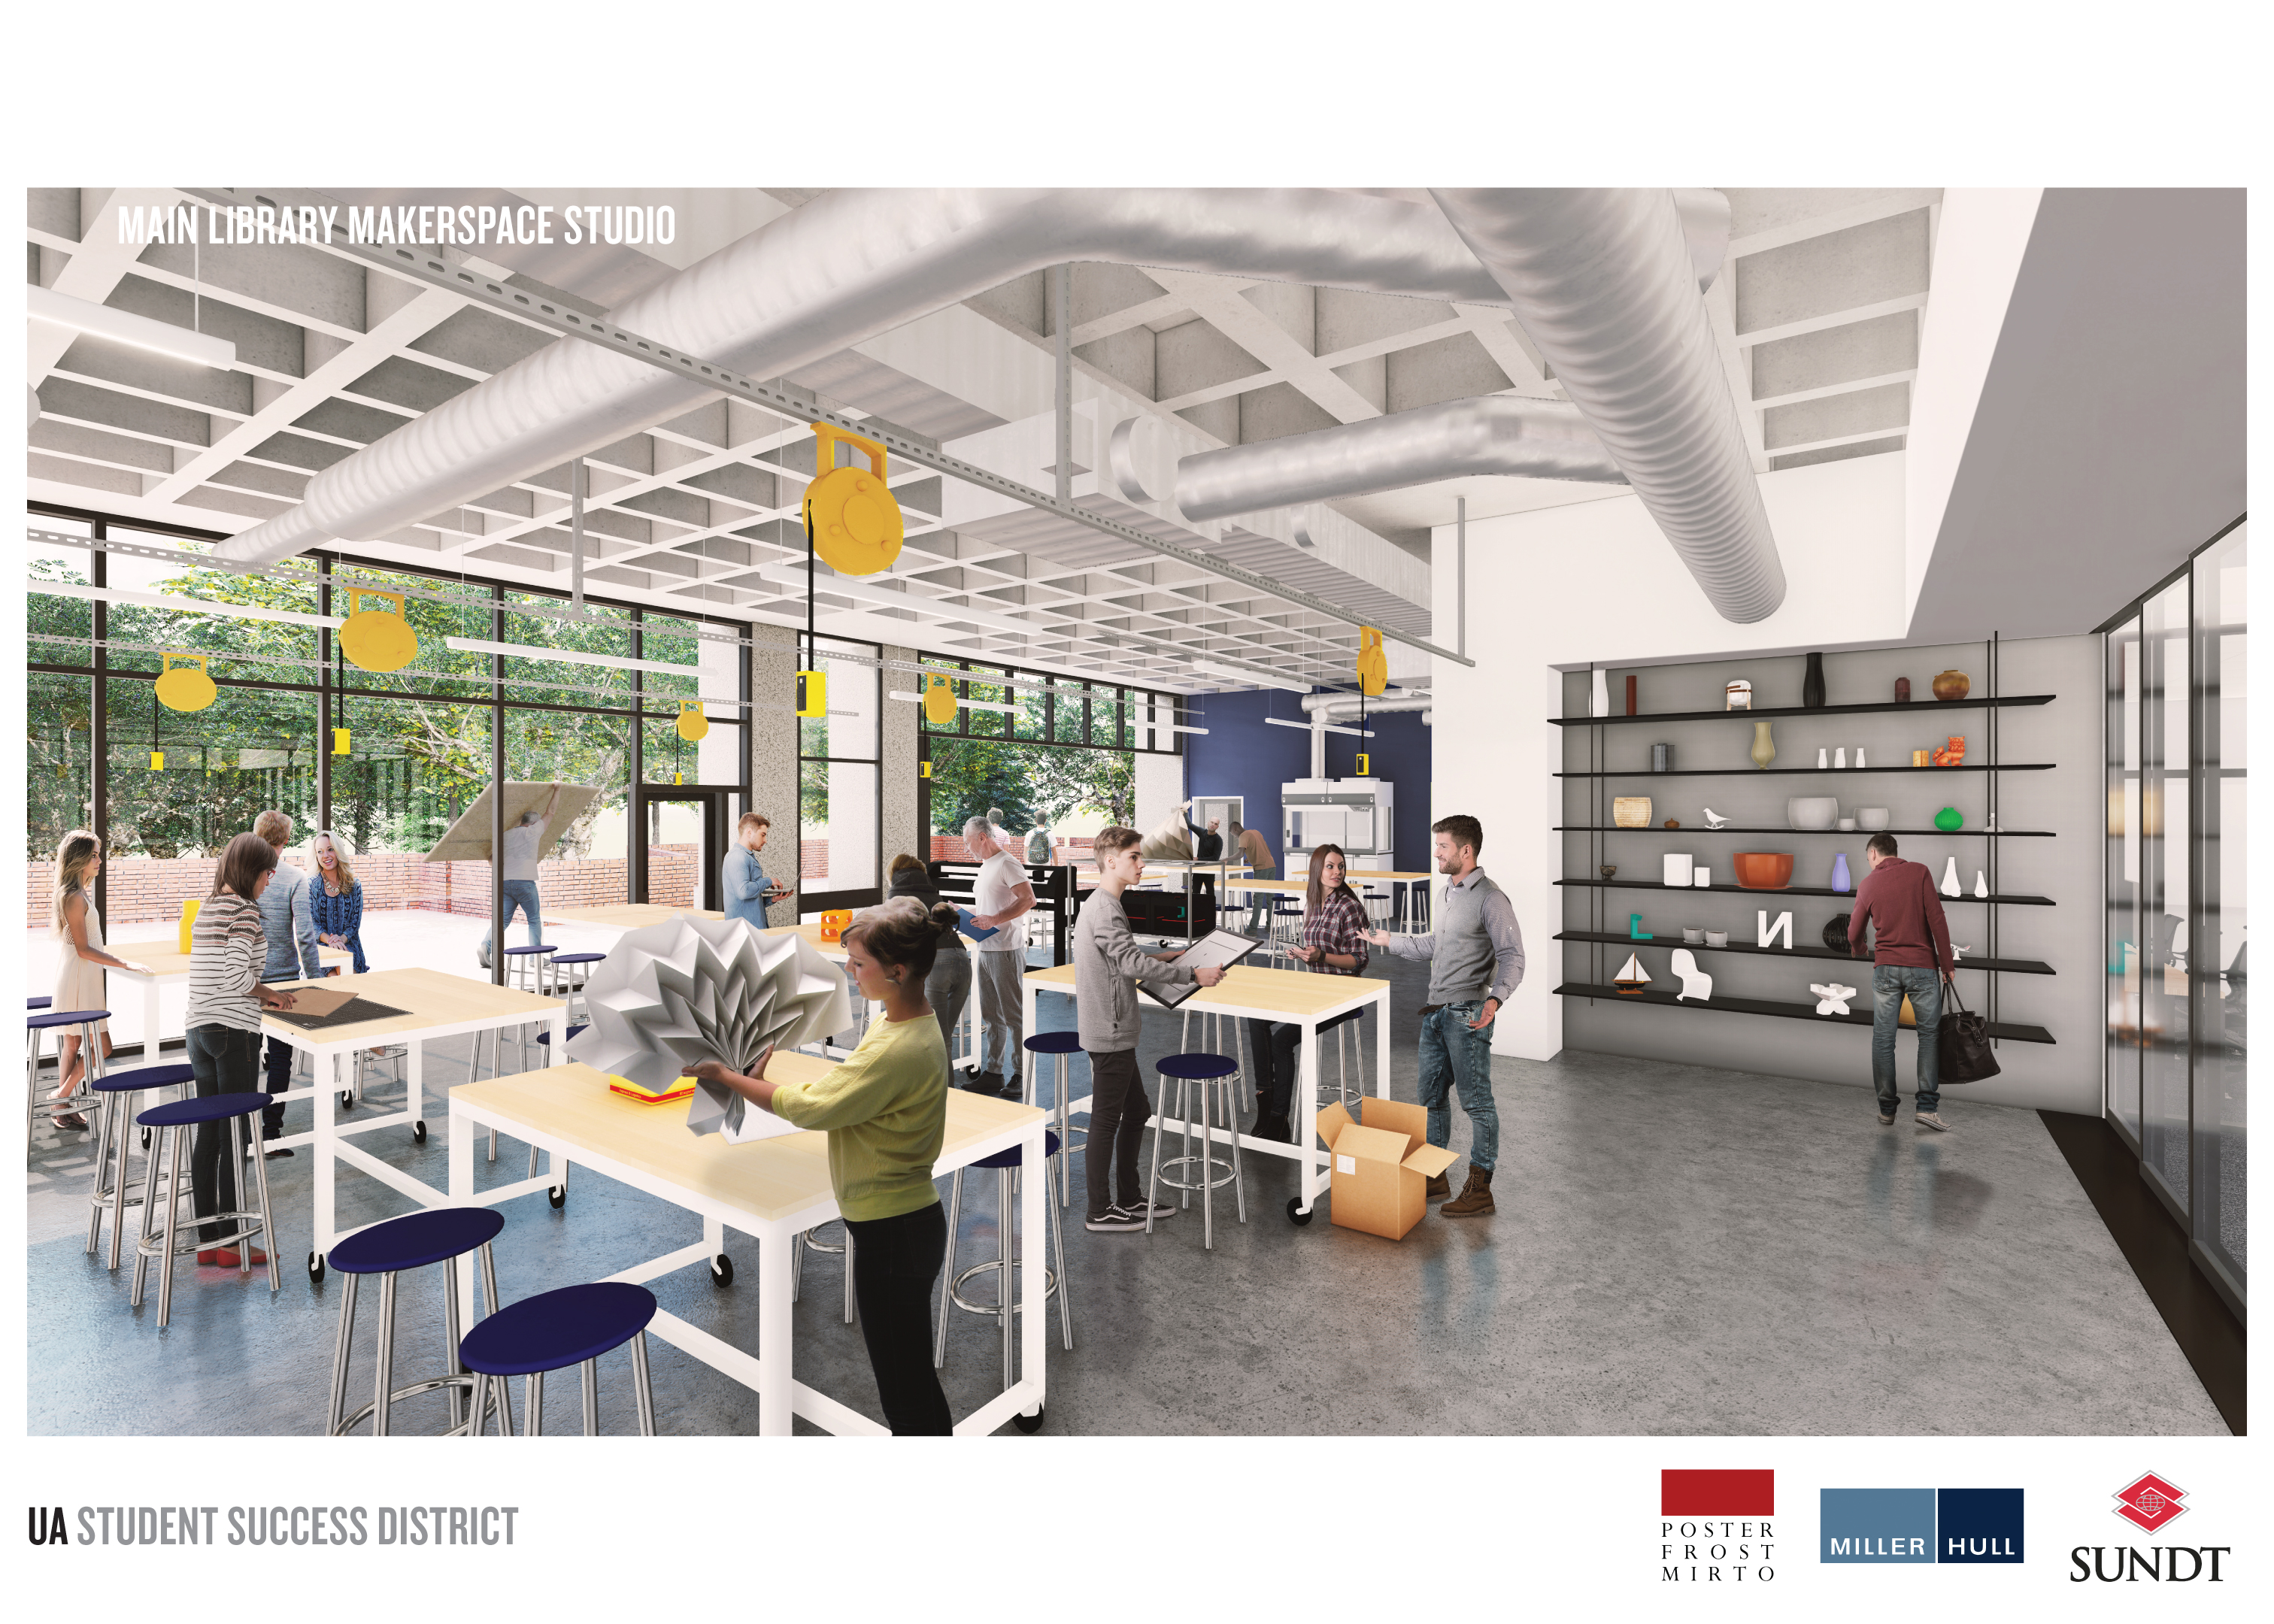 Example of the Student Success District design